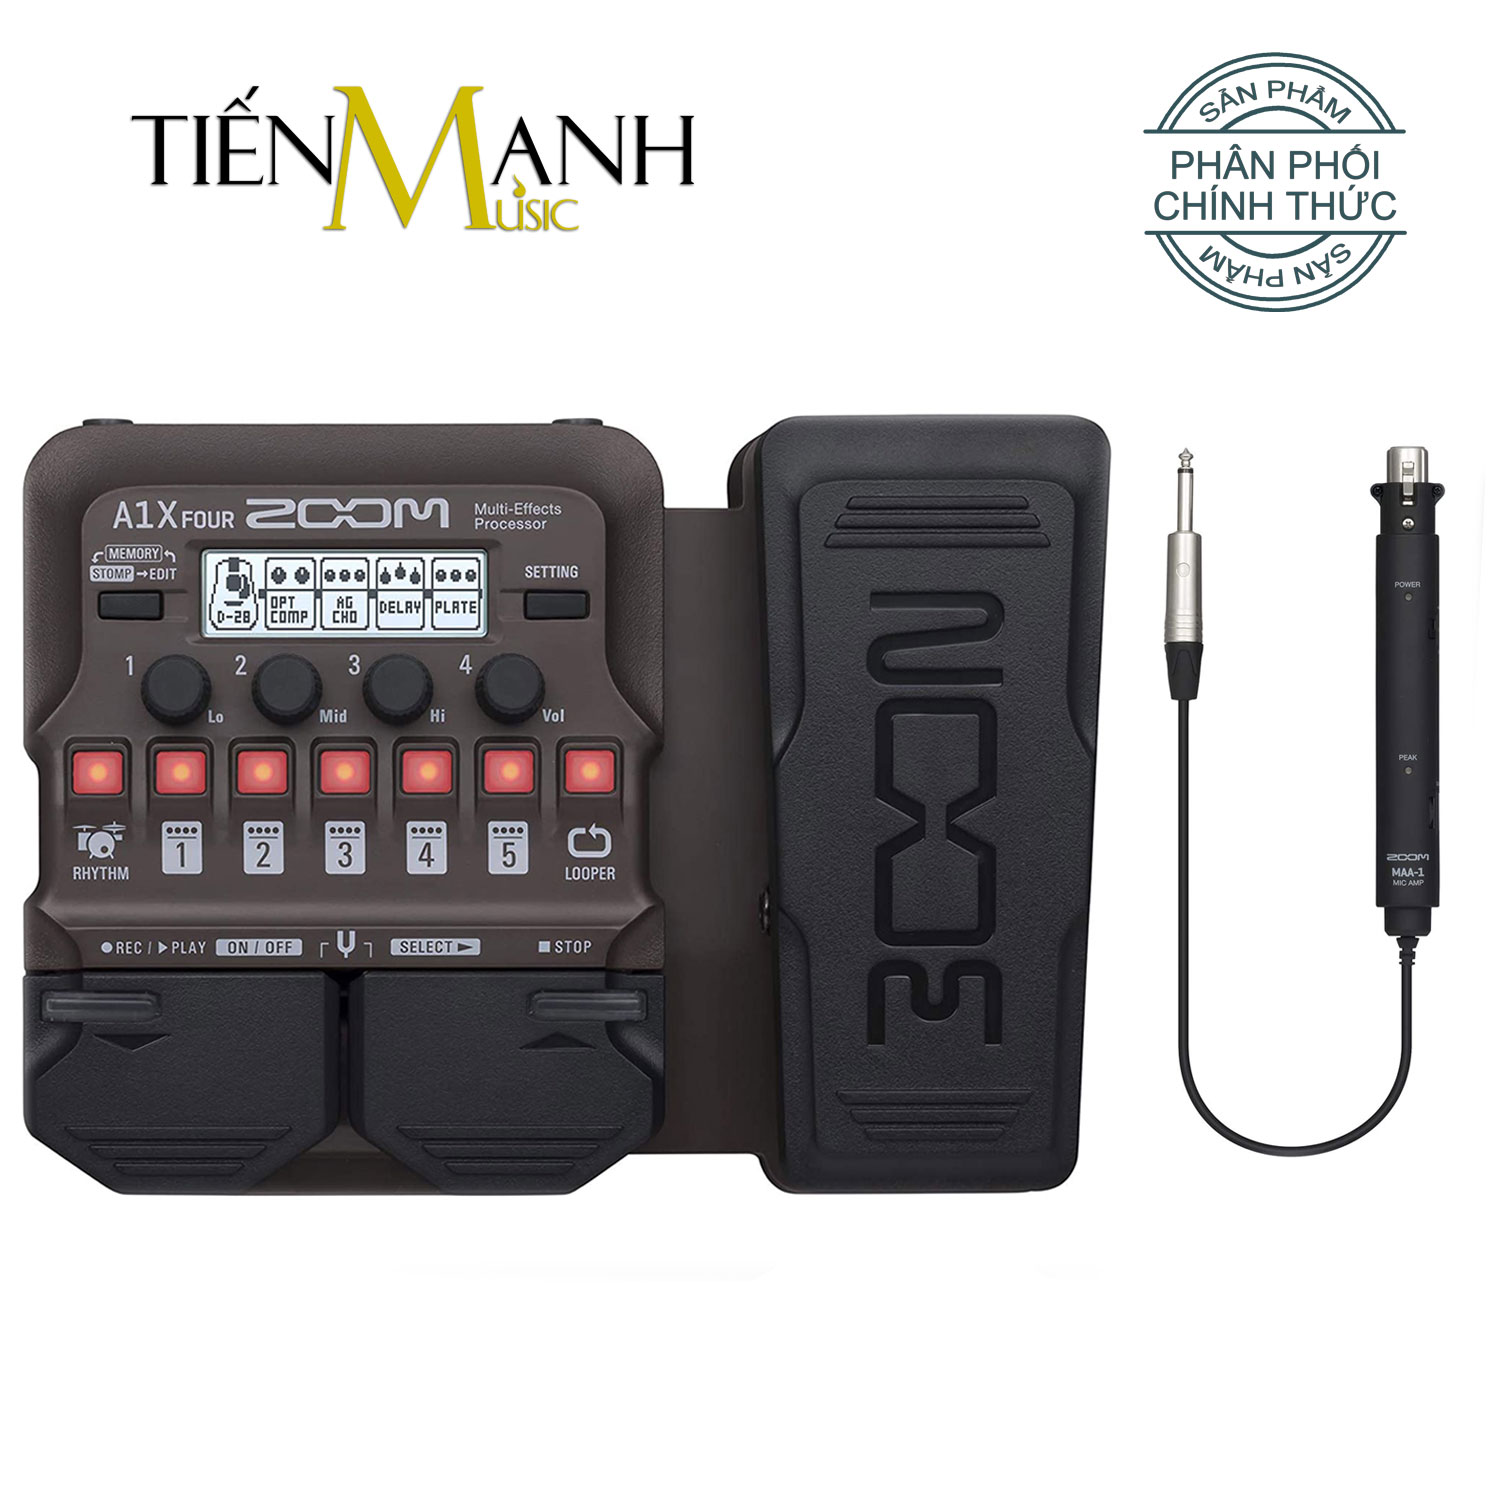 Zoom A1X Four - Phơ Acoustic Guitar Bàn đạp Multi-Effects Pedal